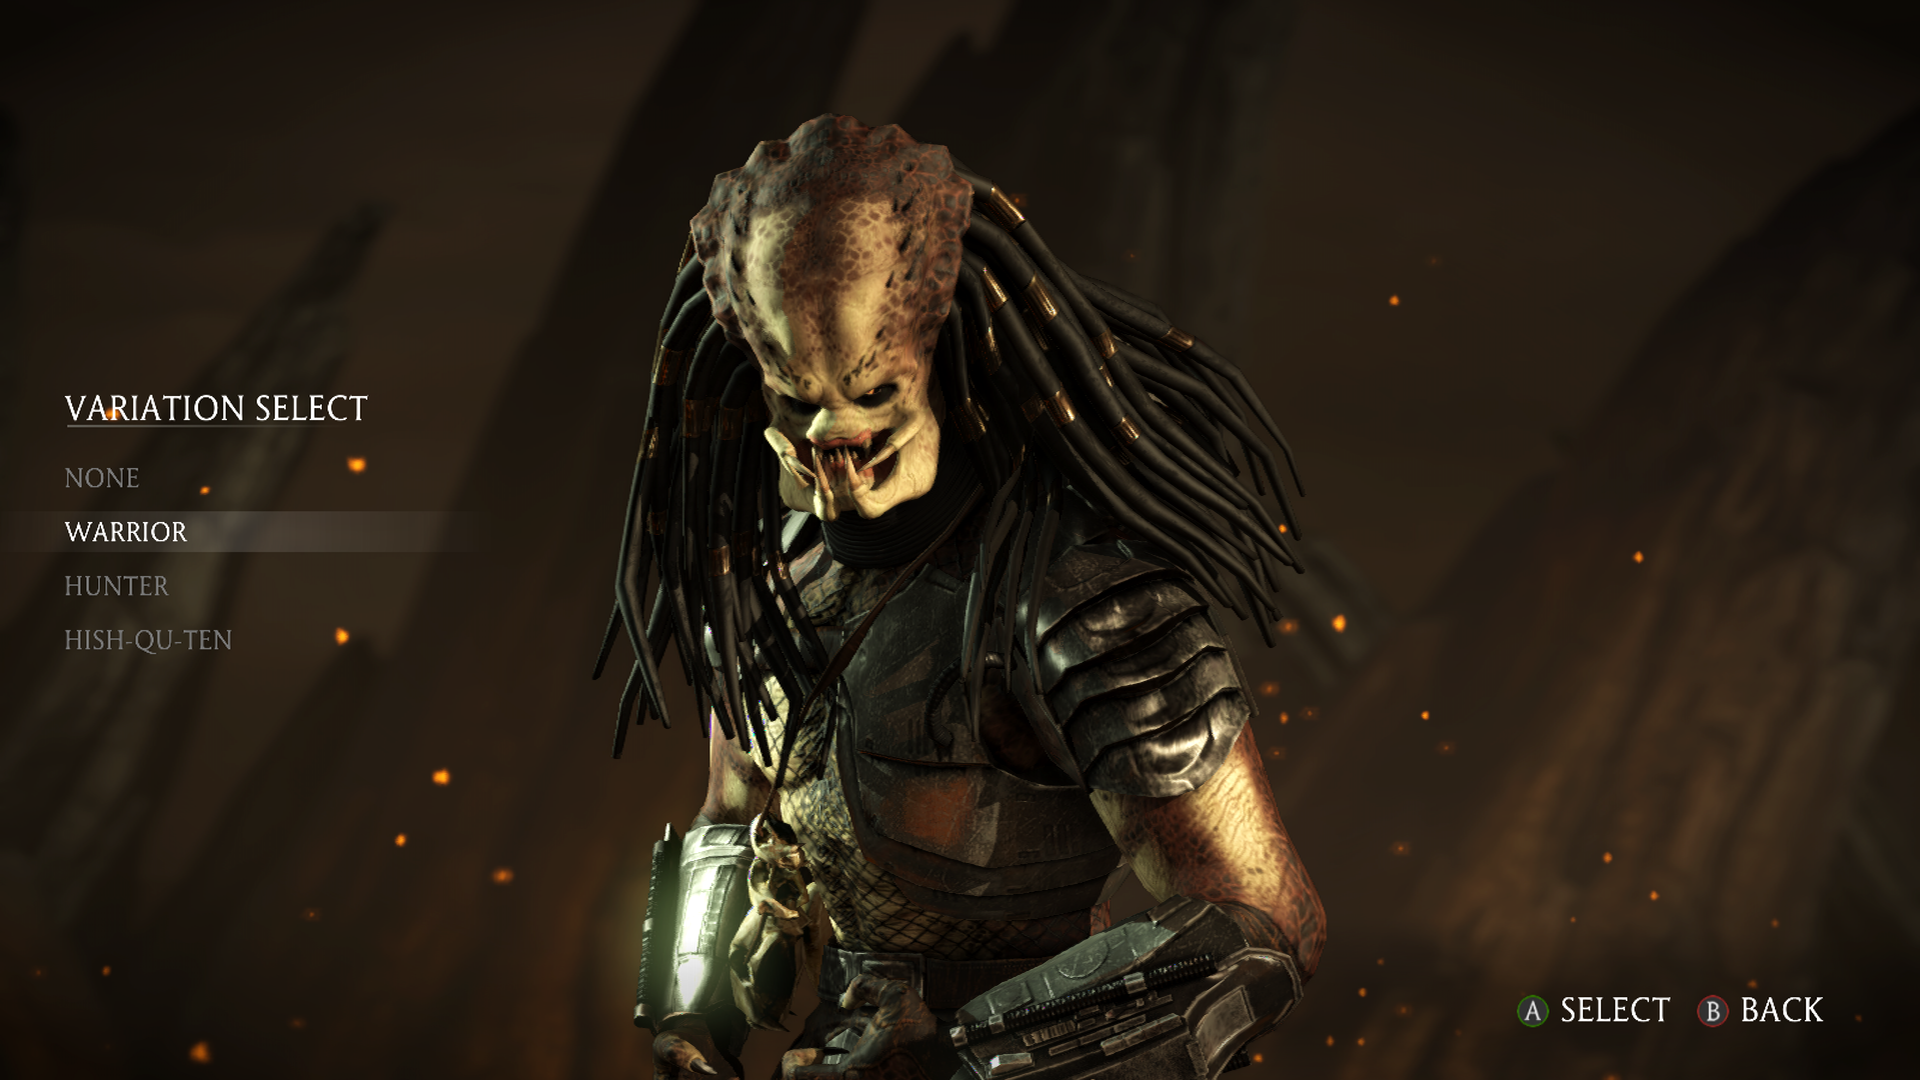 Mortal Kombat X Leak Reveals Predator Gameplay And More Gamespot